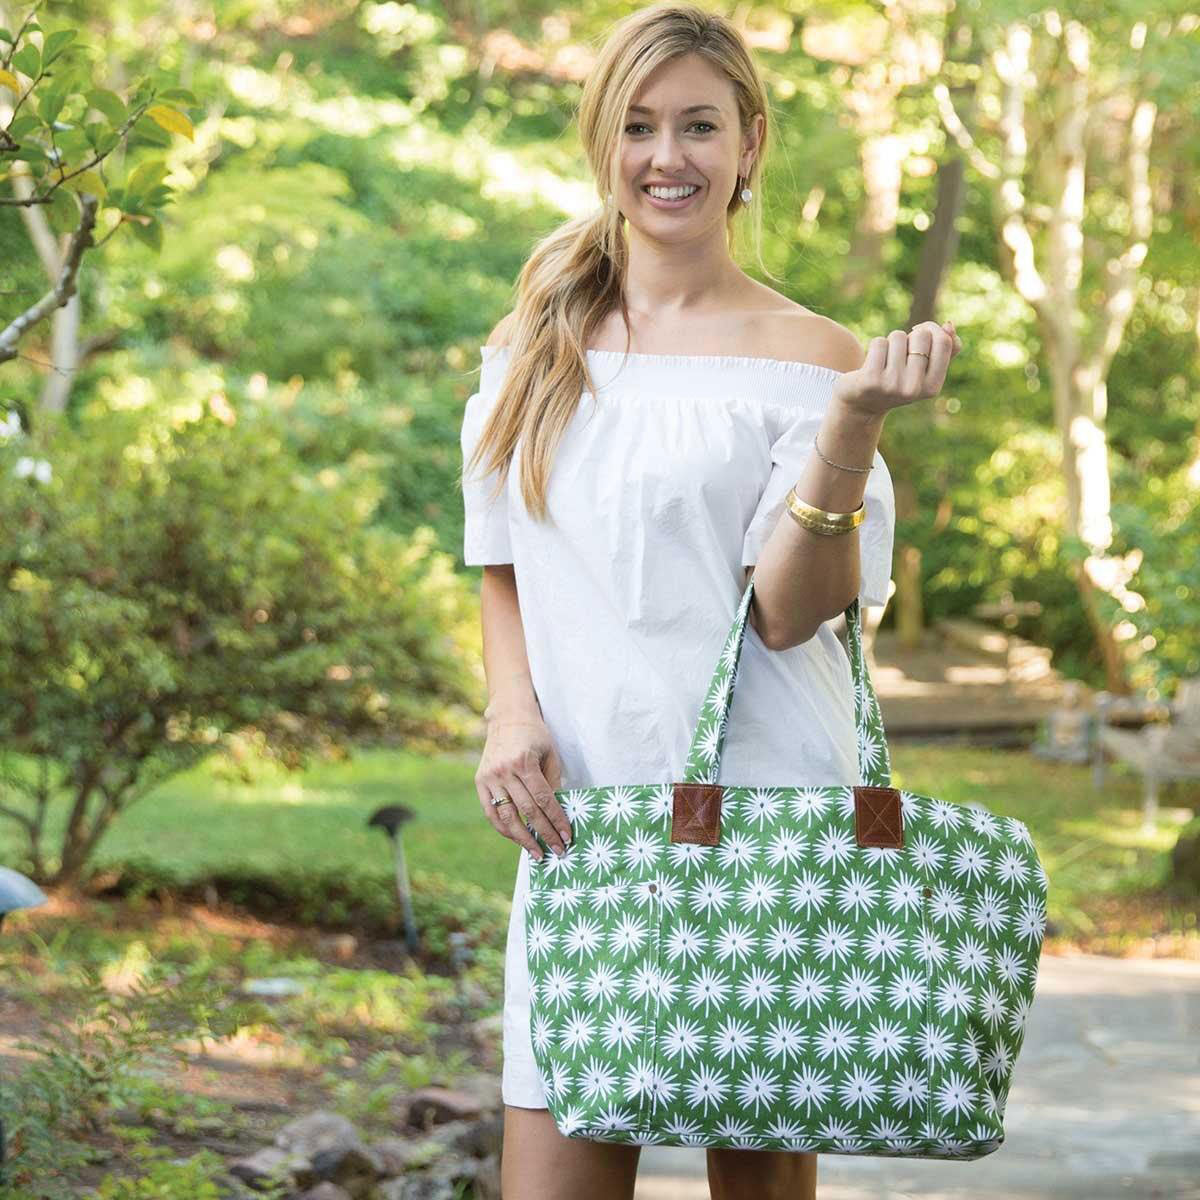 Palmetto Green Relaxed Canvas Tote Bag - so cute for spring!